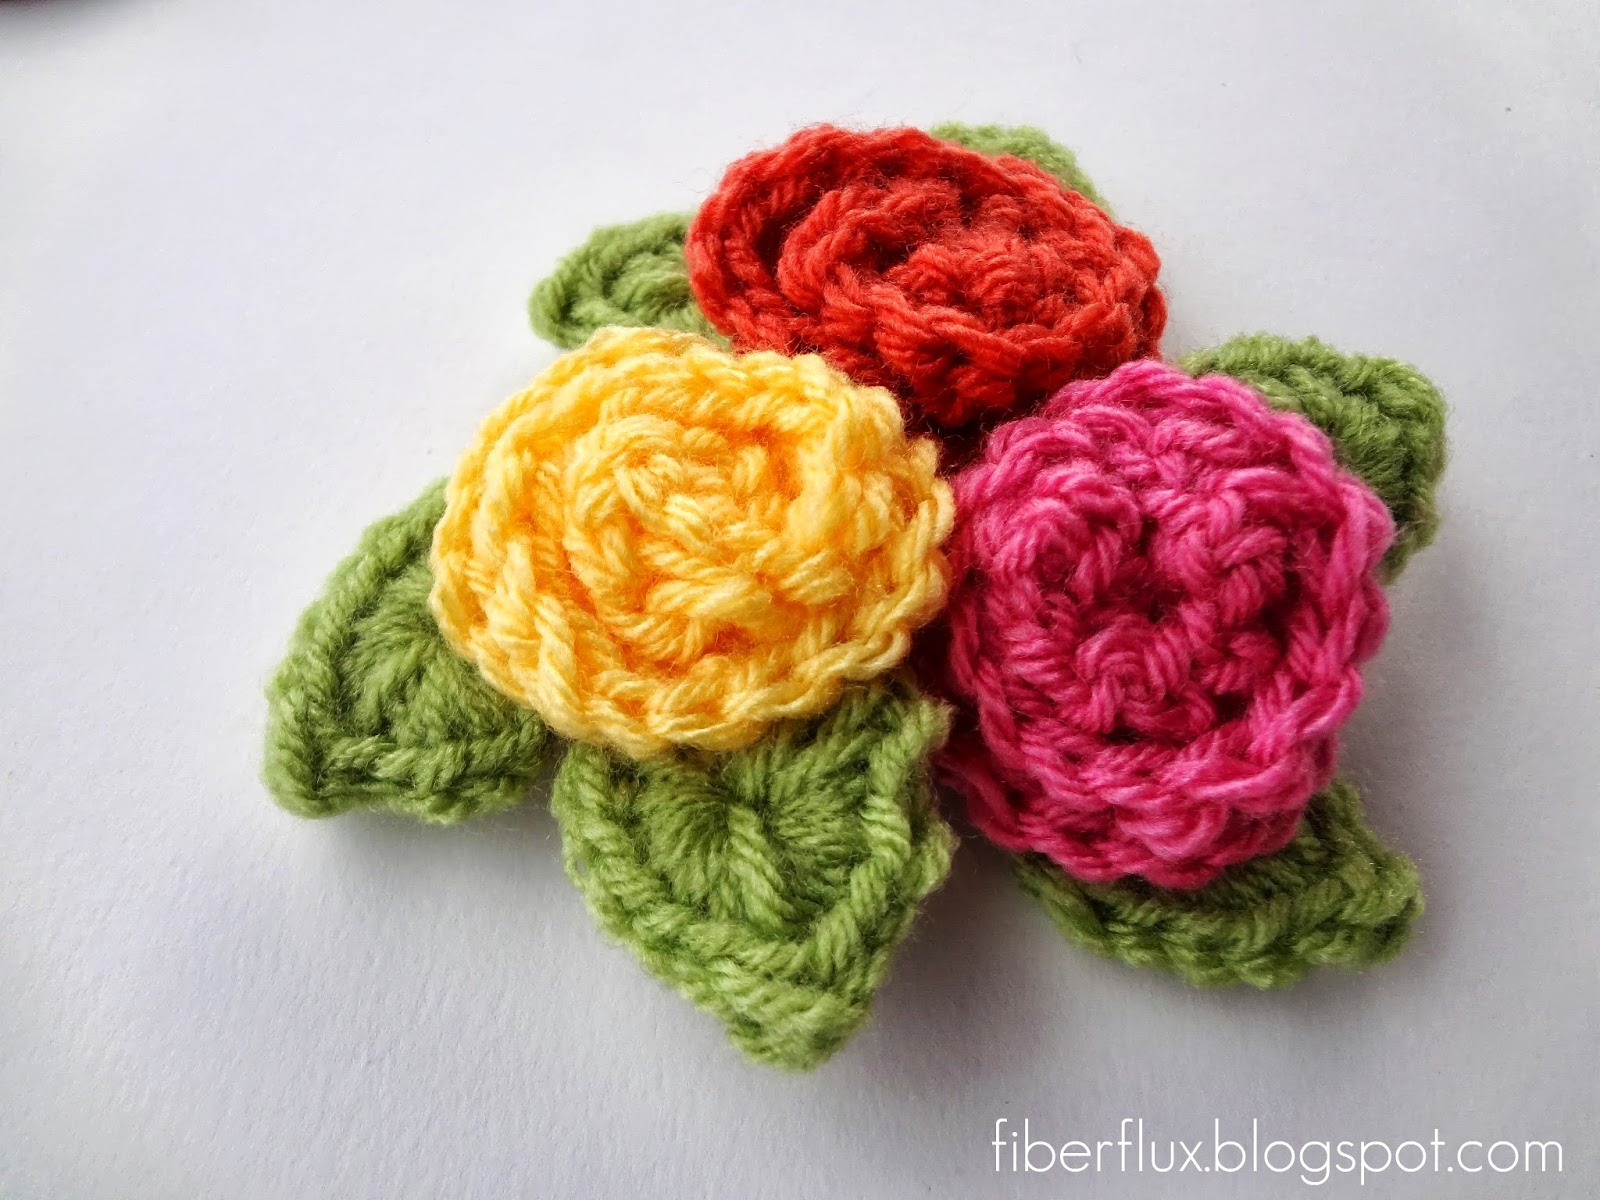 Crochet Rose : Fiber Flux: How To Crochet A Curlicue Rose